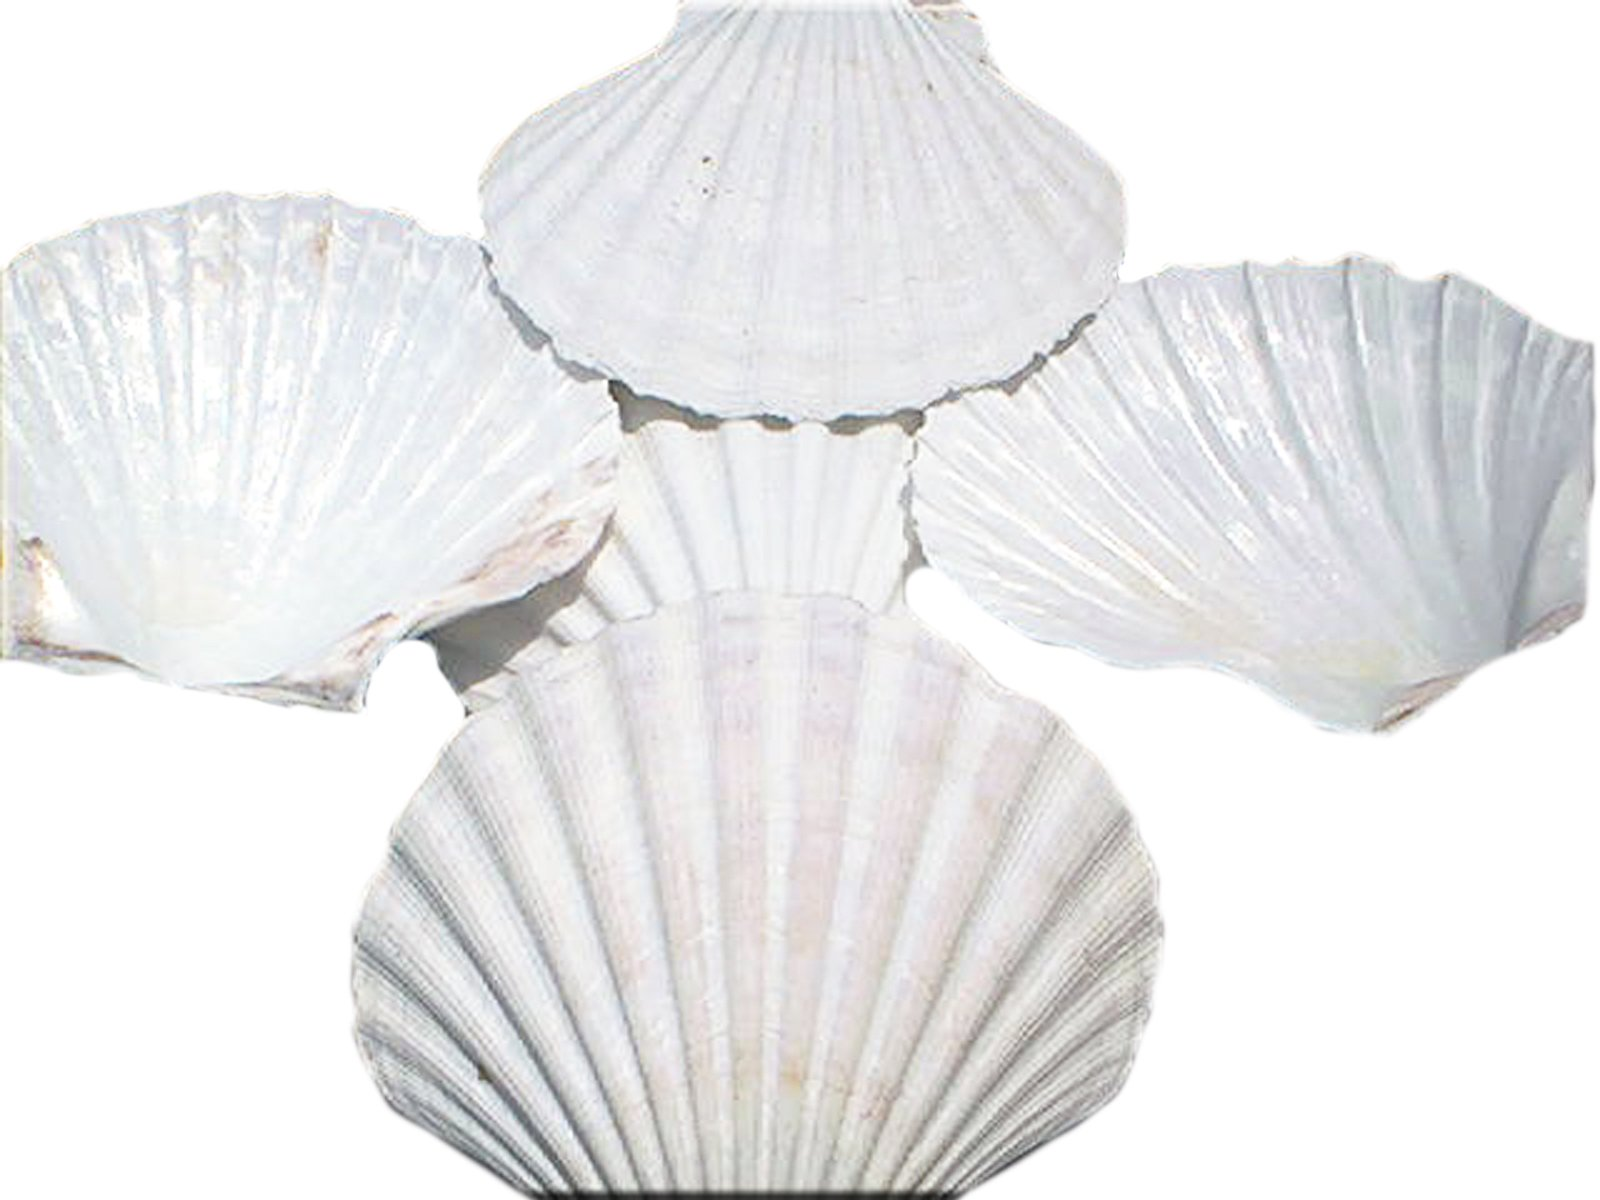 Set of 12 Large White Baking Scallop (3.5''-4'') Restaurant Quality Real Seashells Beach Wedding Coastal Crafts and Decor - Florida Shells and Gifts Inc.